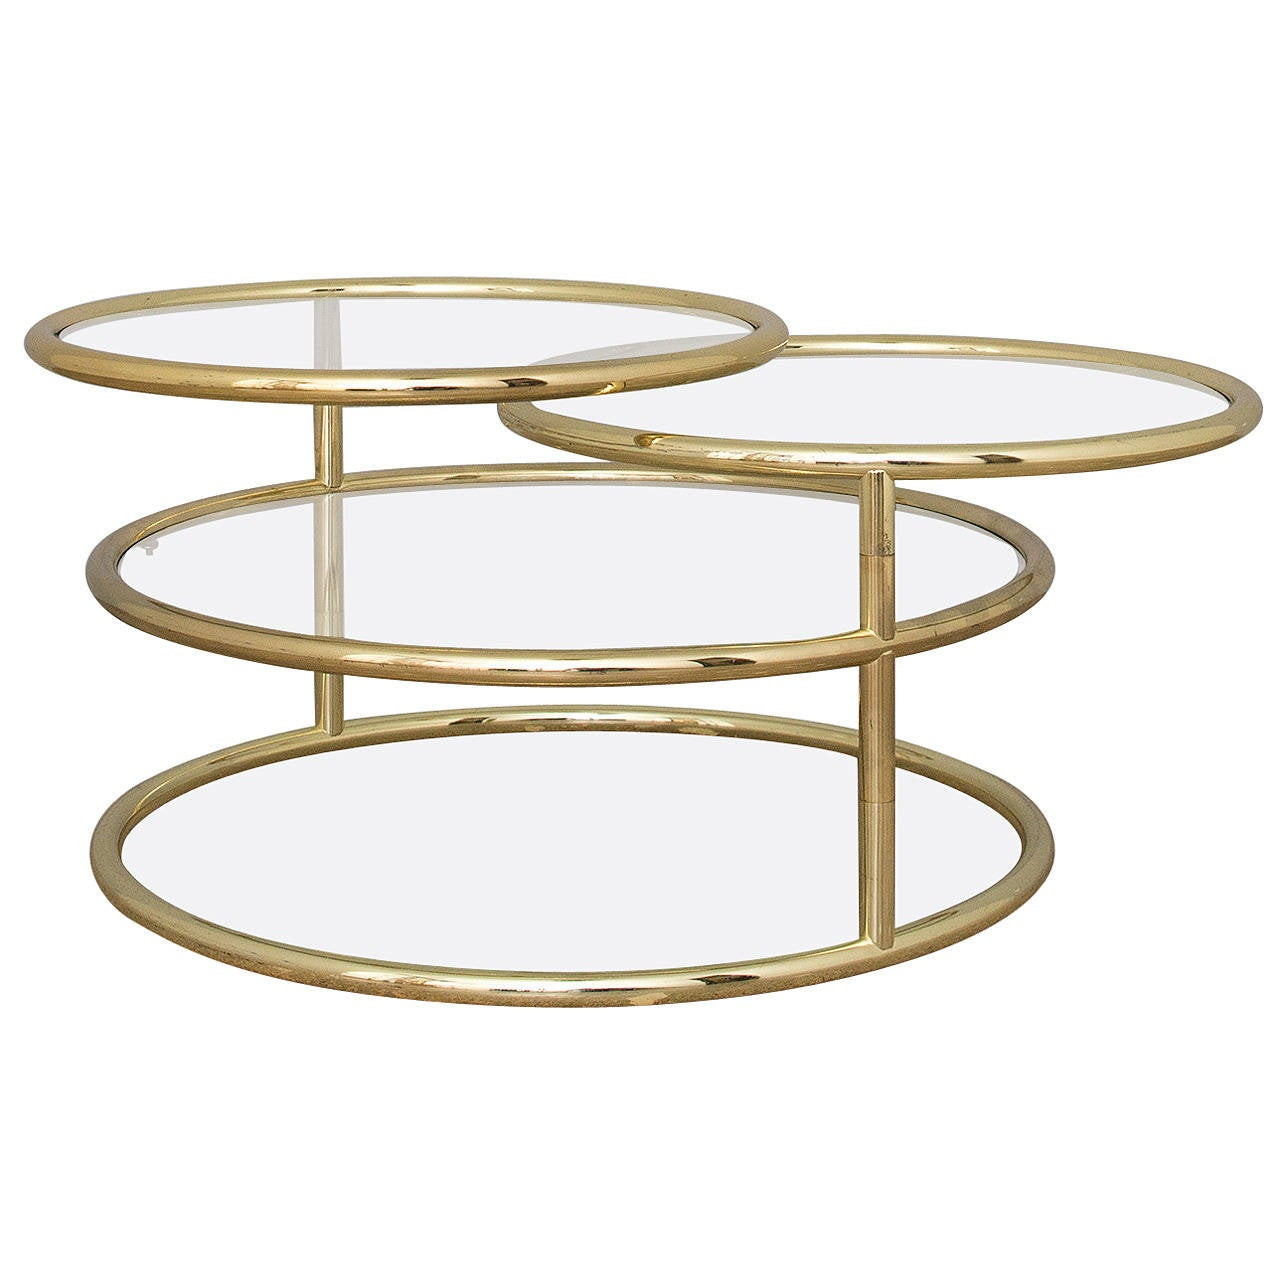 Brass and Glass Swivel Coffee Table at 1stdibs